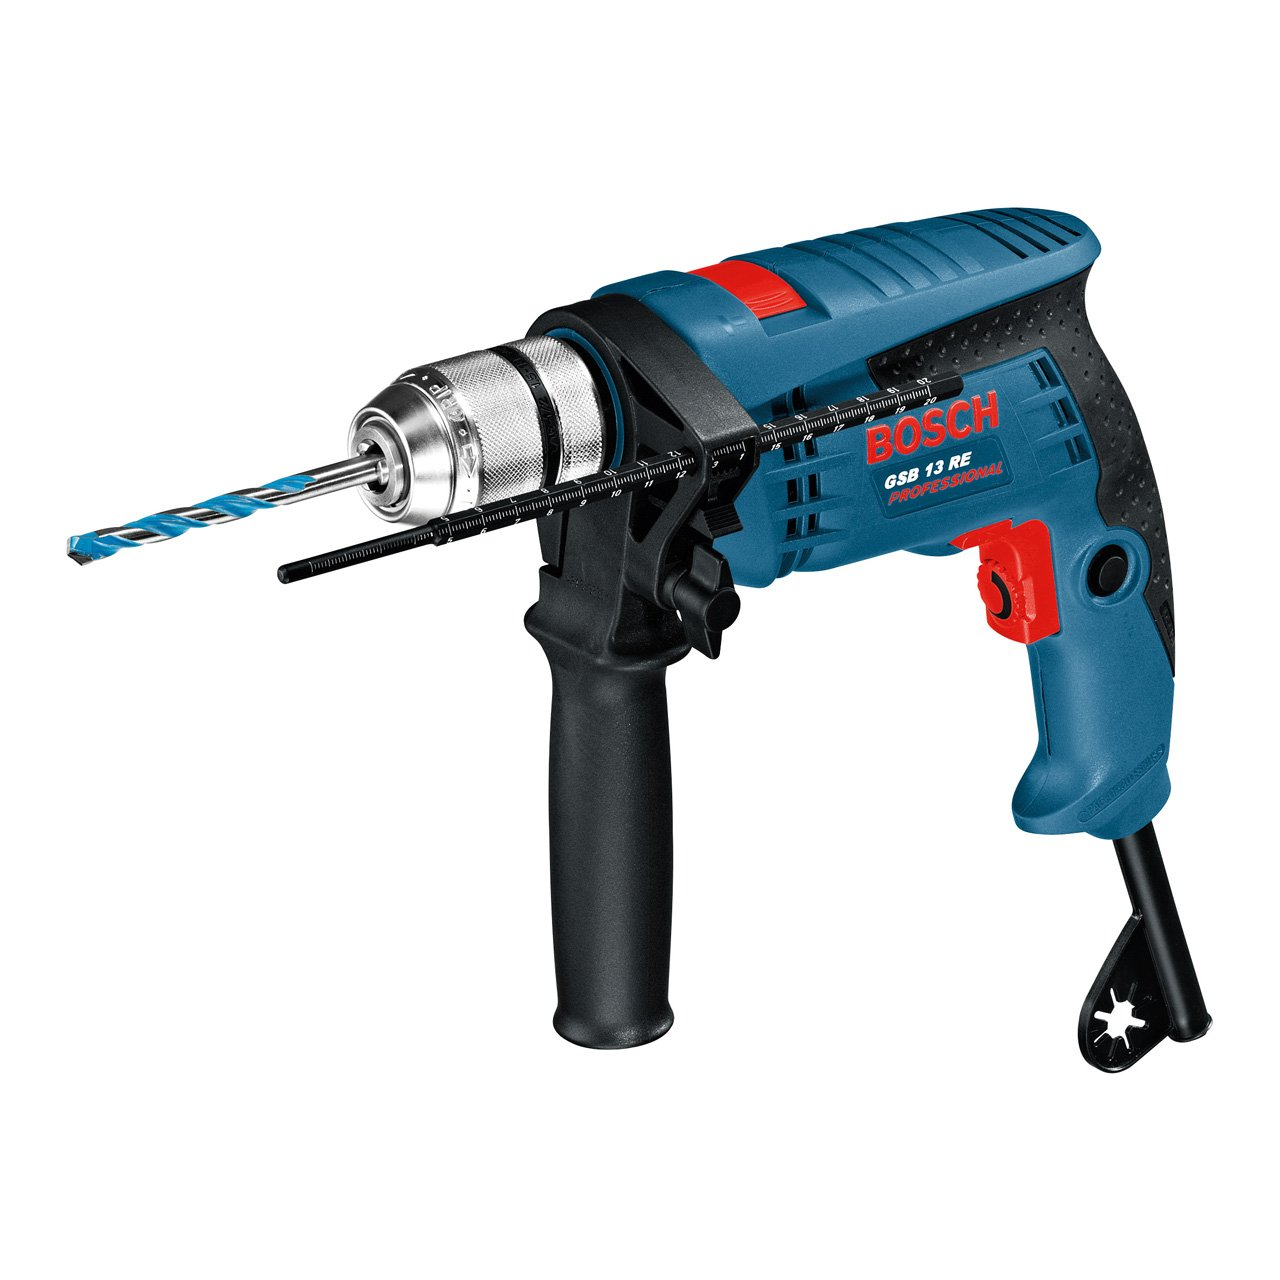 Bosch Professional 0601217100 GSB 13 RE Trapano Battente, Colore: Blu product image